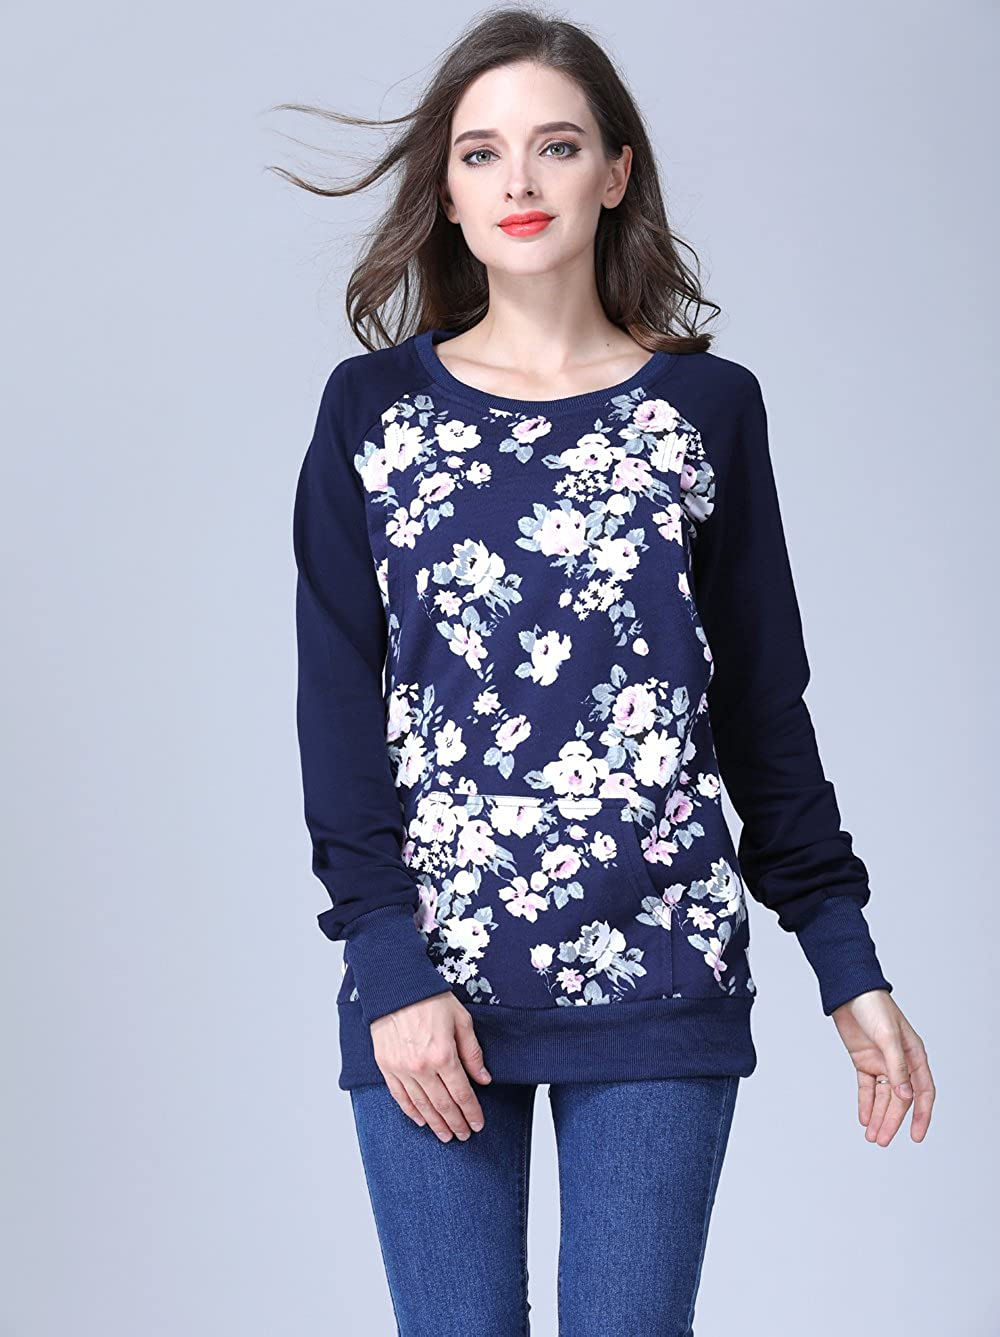 f124d77886f1d Emotion Moms Long Sleeve Winter Maternity Clothes Cotton Nursing  Breastfeeding Tops for Pregnant Women at Amazon Women's Clothing store: